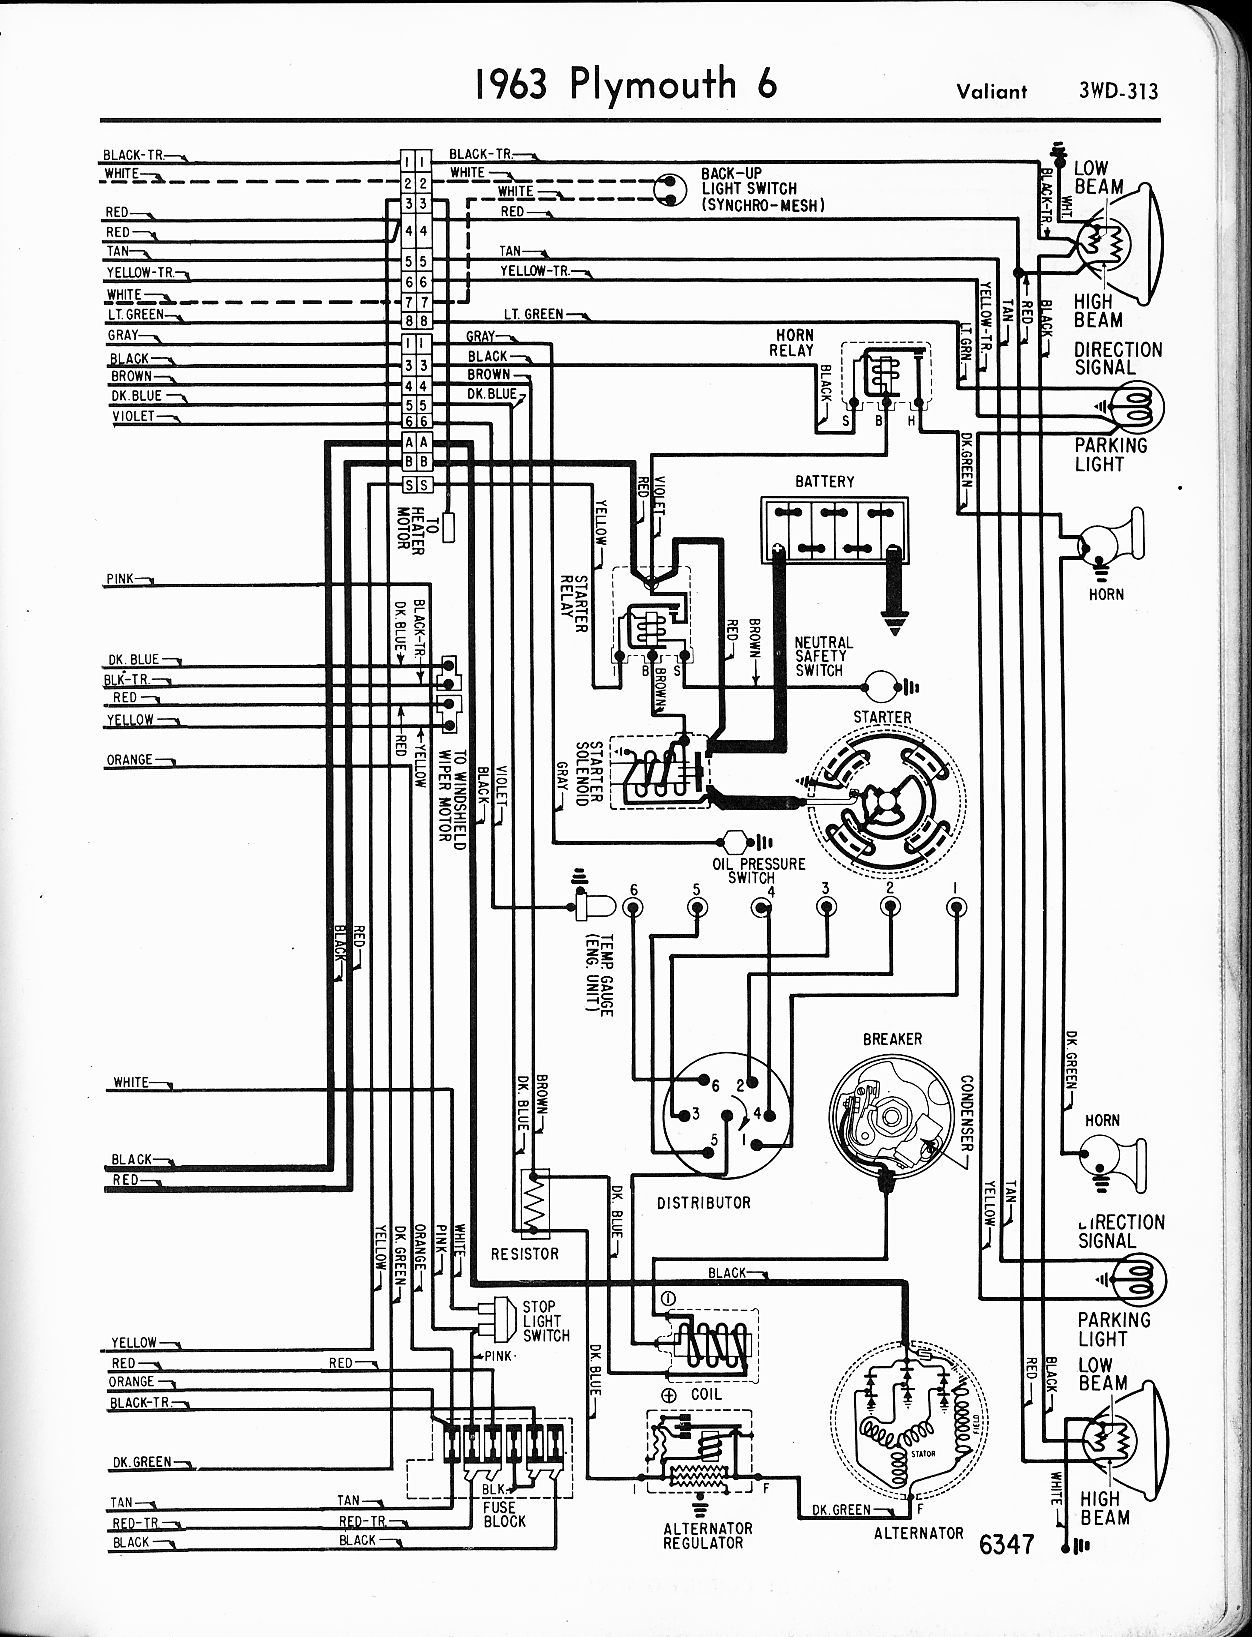 hight resolution of 1956 chrysler wiring diagram opinions about wiring diagram u2022 rh voterid co refrigerator schematic diagram refrigerator